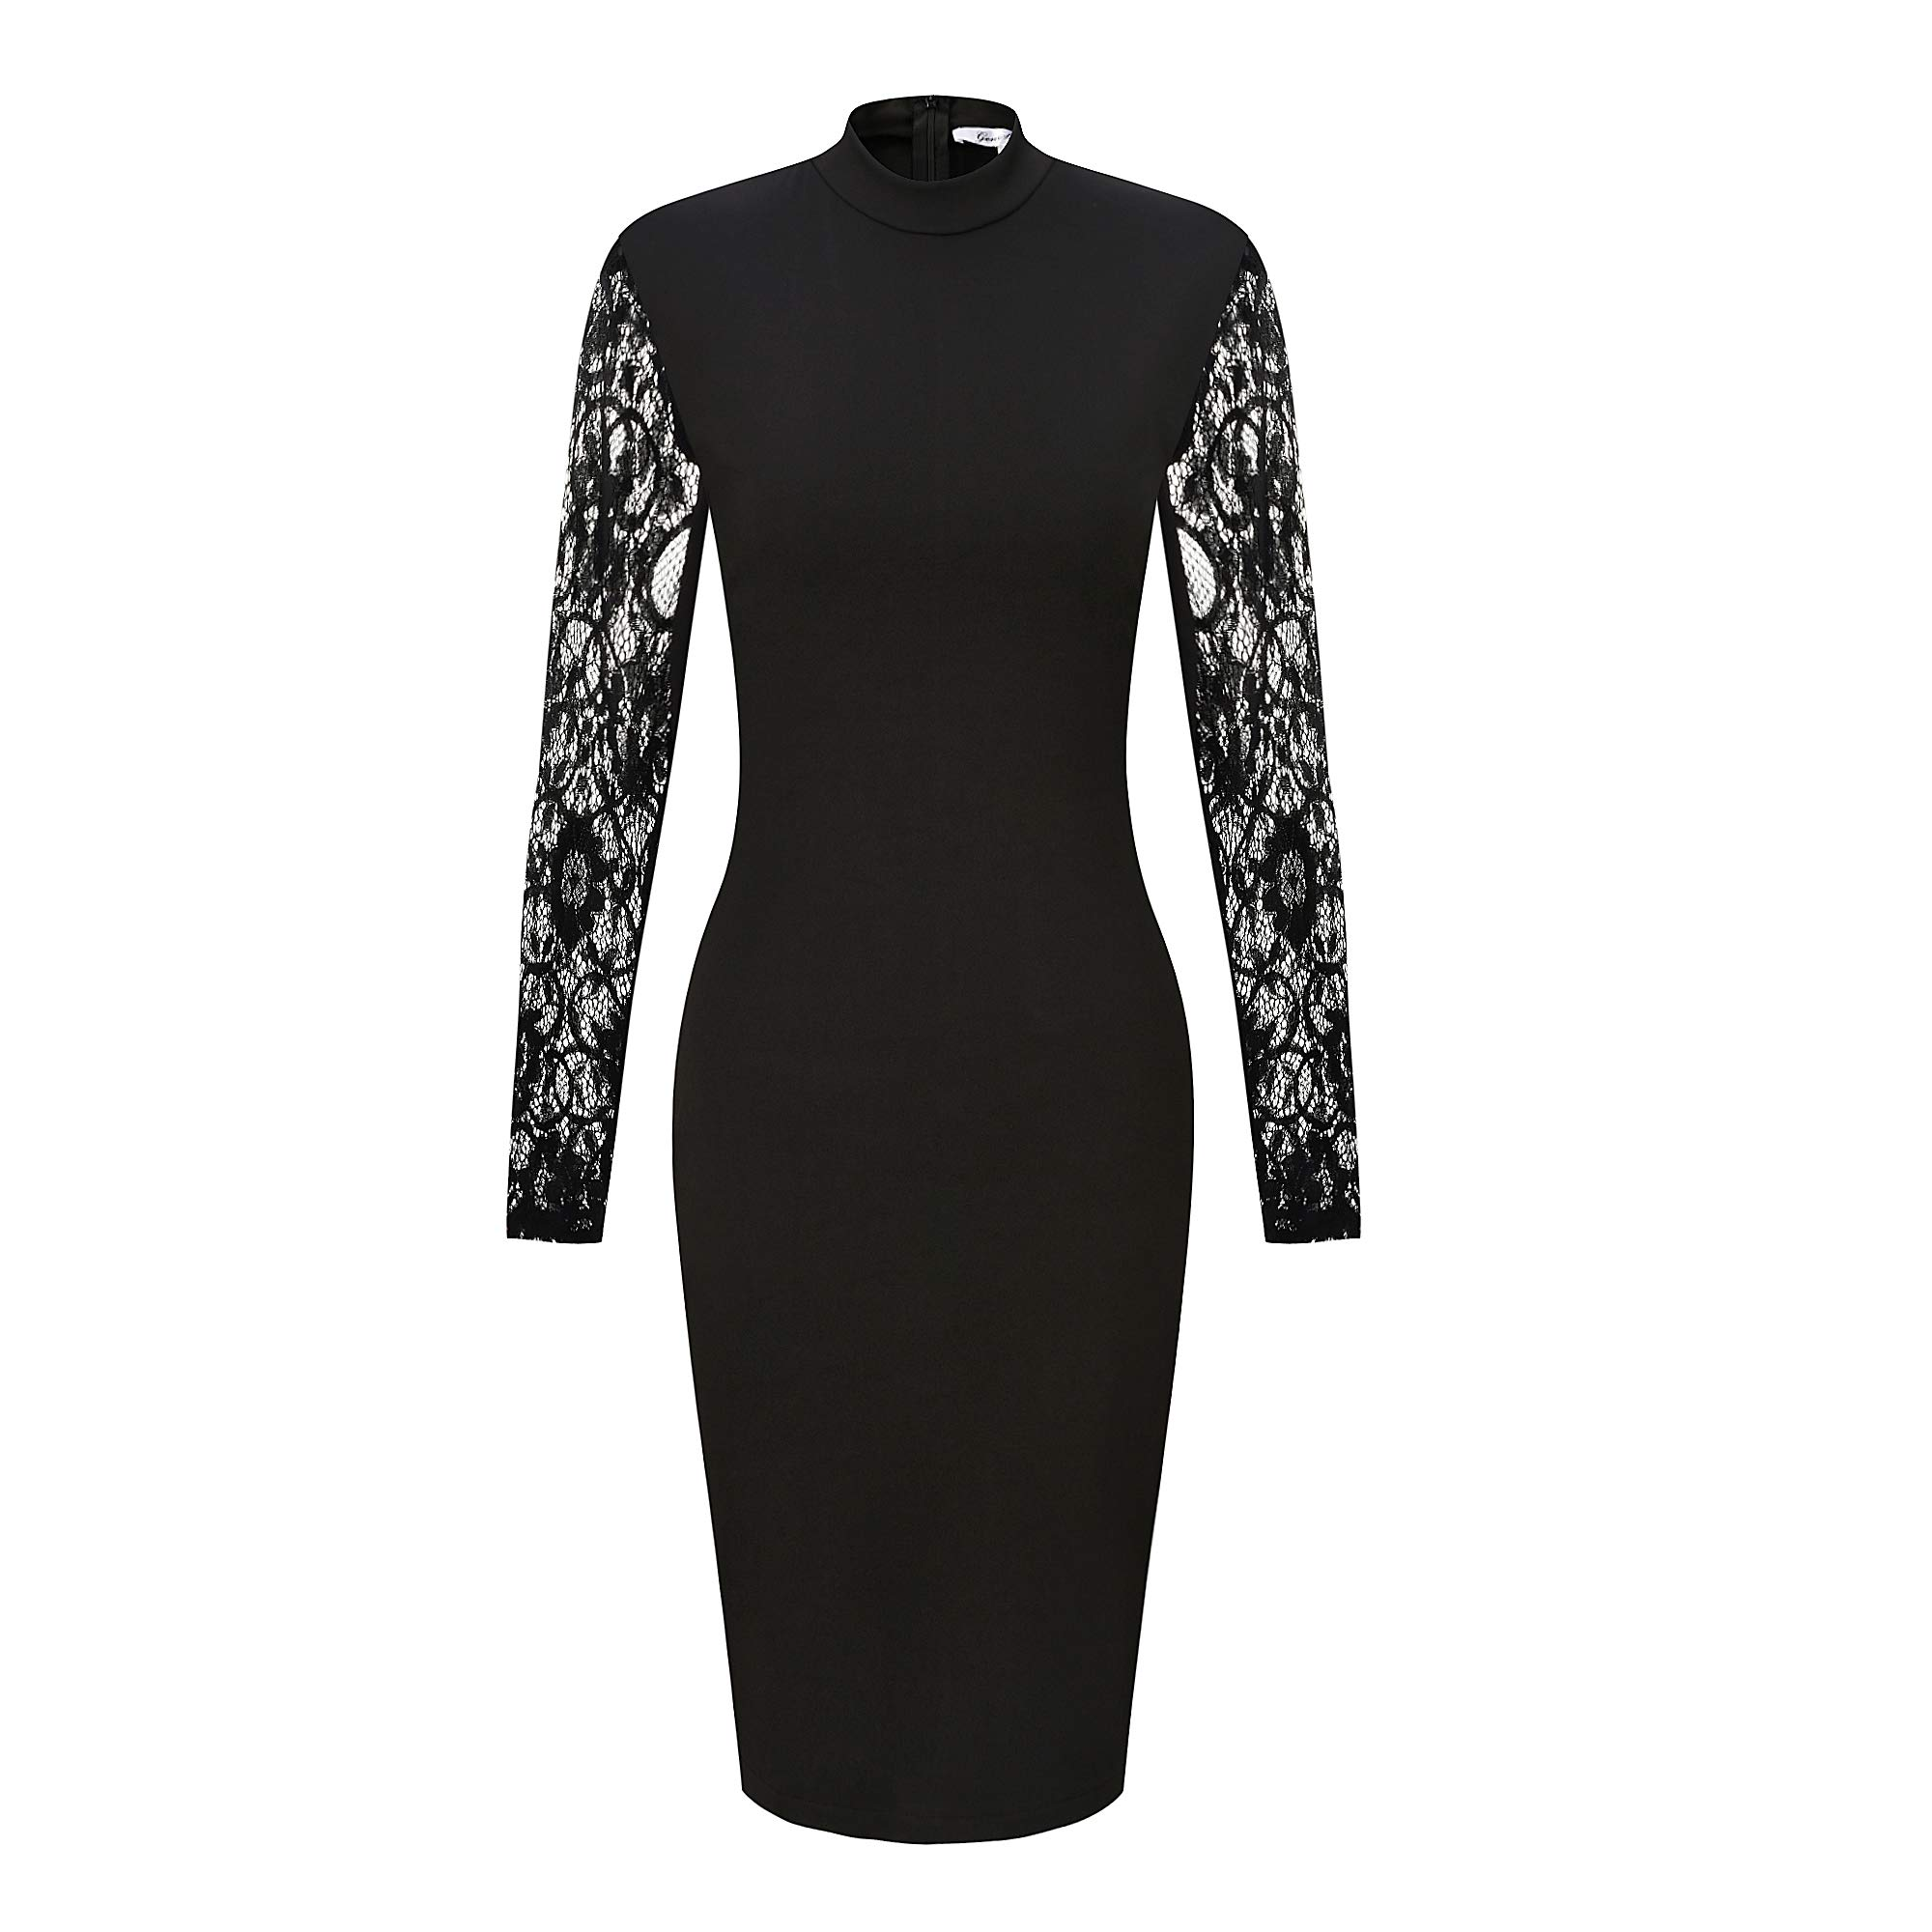 GENSHUO Womens Dresses Sexy Bodycon Long Sleeves Lace Design Crew Neck Above Knee Casual Party Cocktail Dress Black XXL